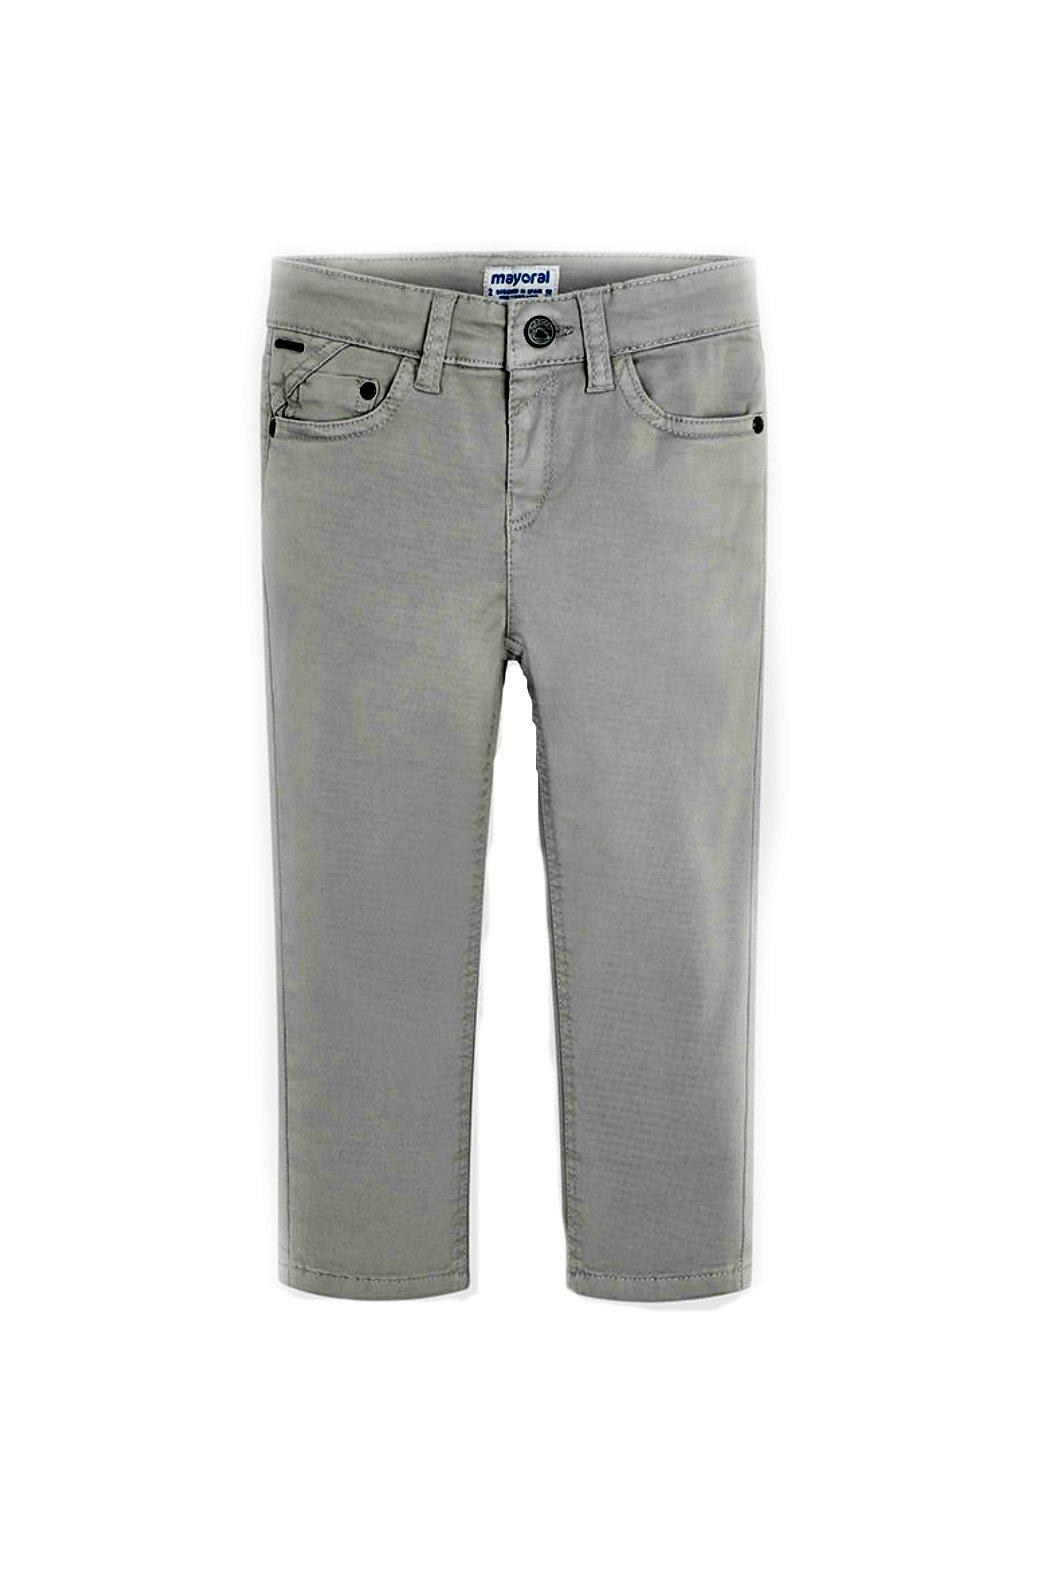 Mayoral Boys Twill-5-Pocket Trousers - Main Image